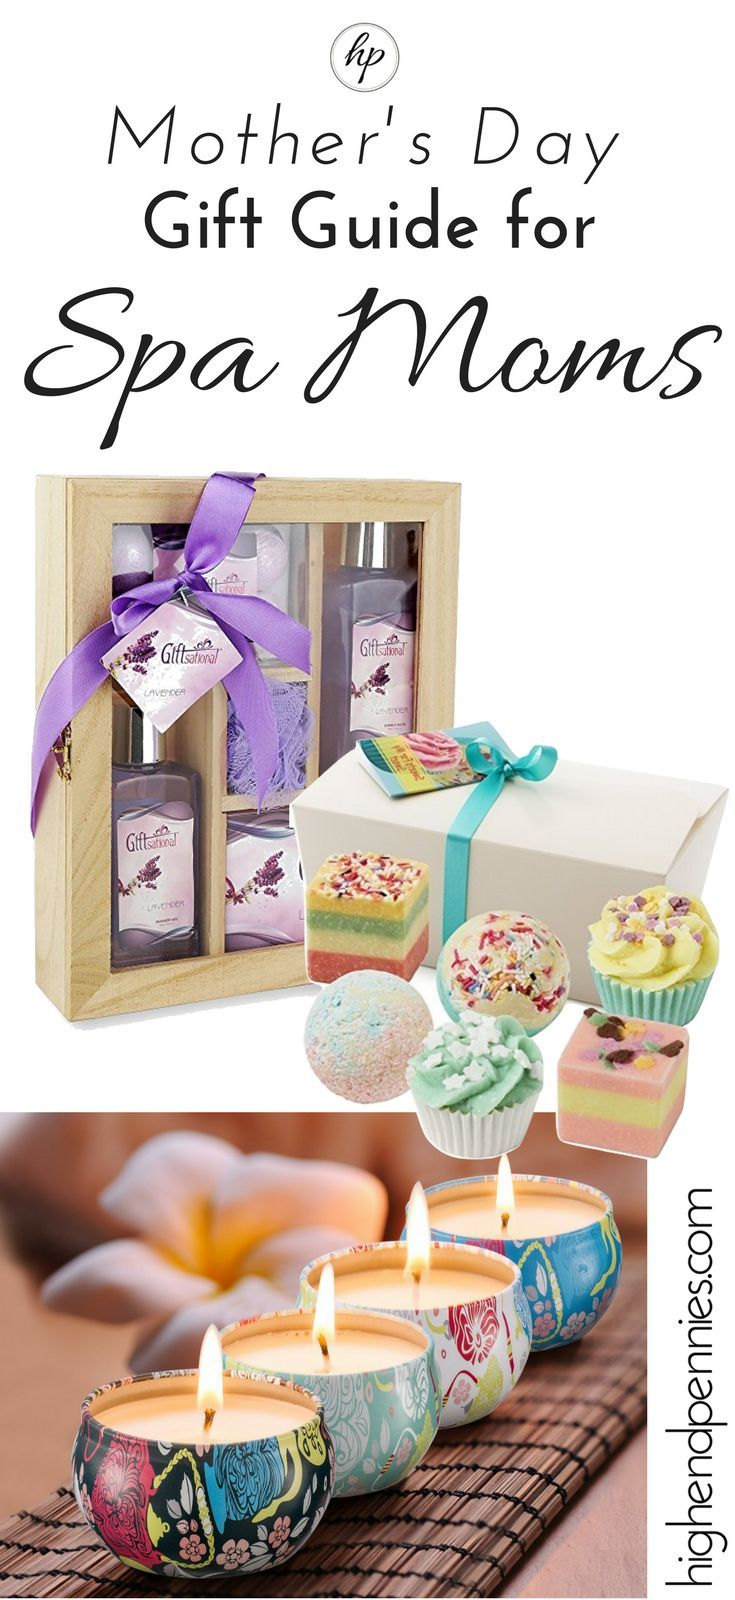 Mothers day gift guide under 20 gifts mother day